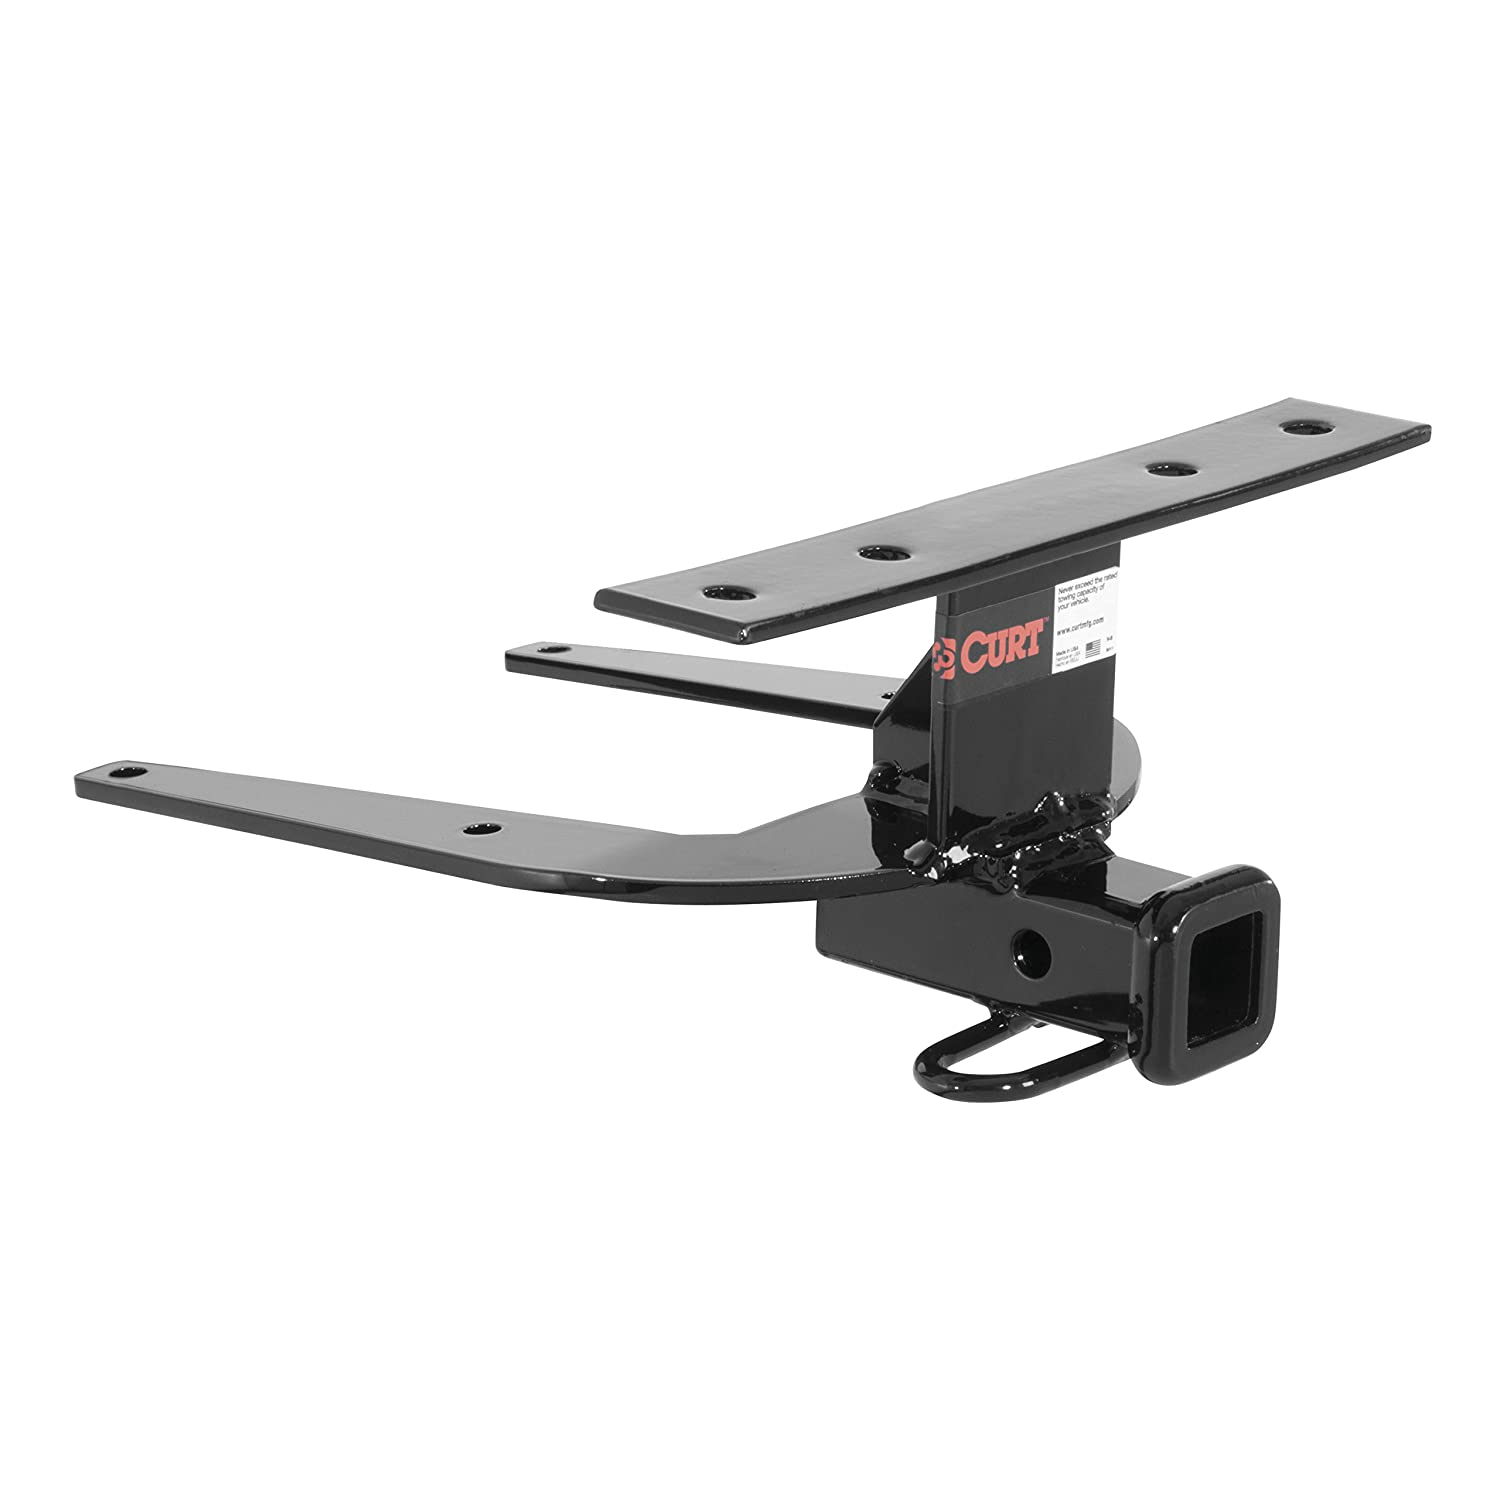 Curt Manufacturing 112093 1-1//4 Class 1 Trailer Hitch Receiver with Ball Mount for 1992-2000 Honda Civic Hatchback